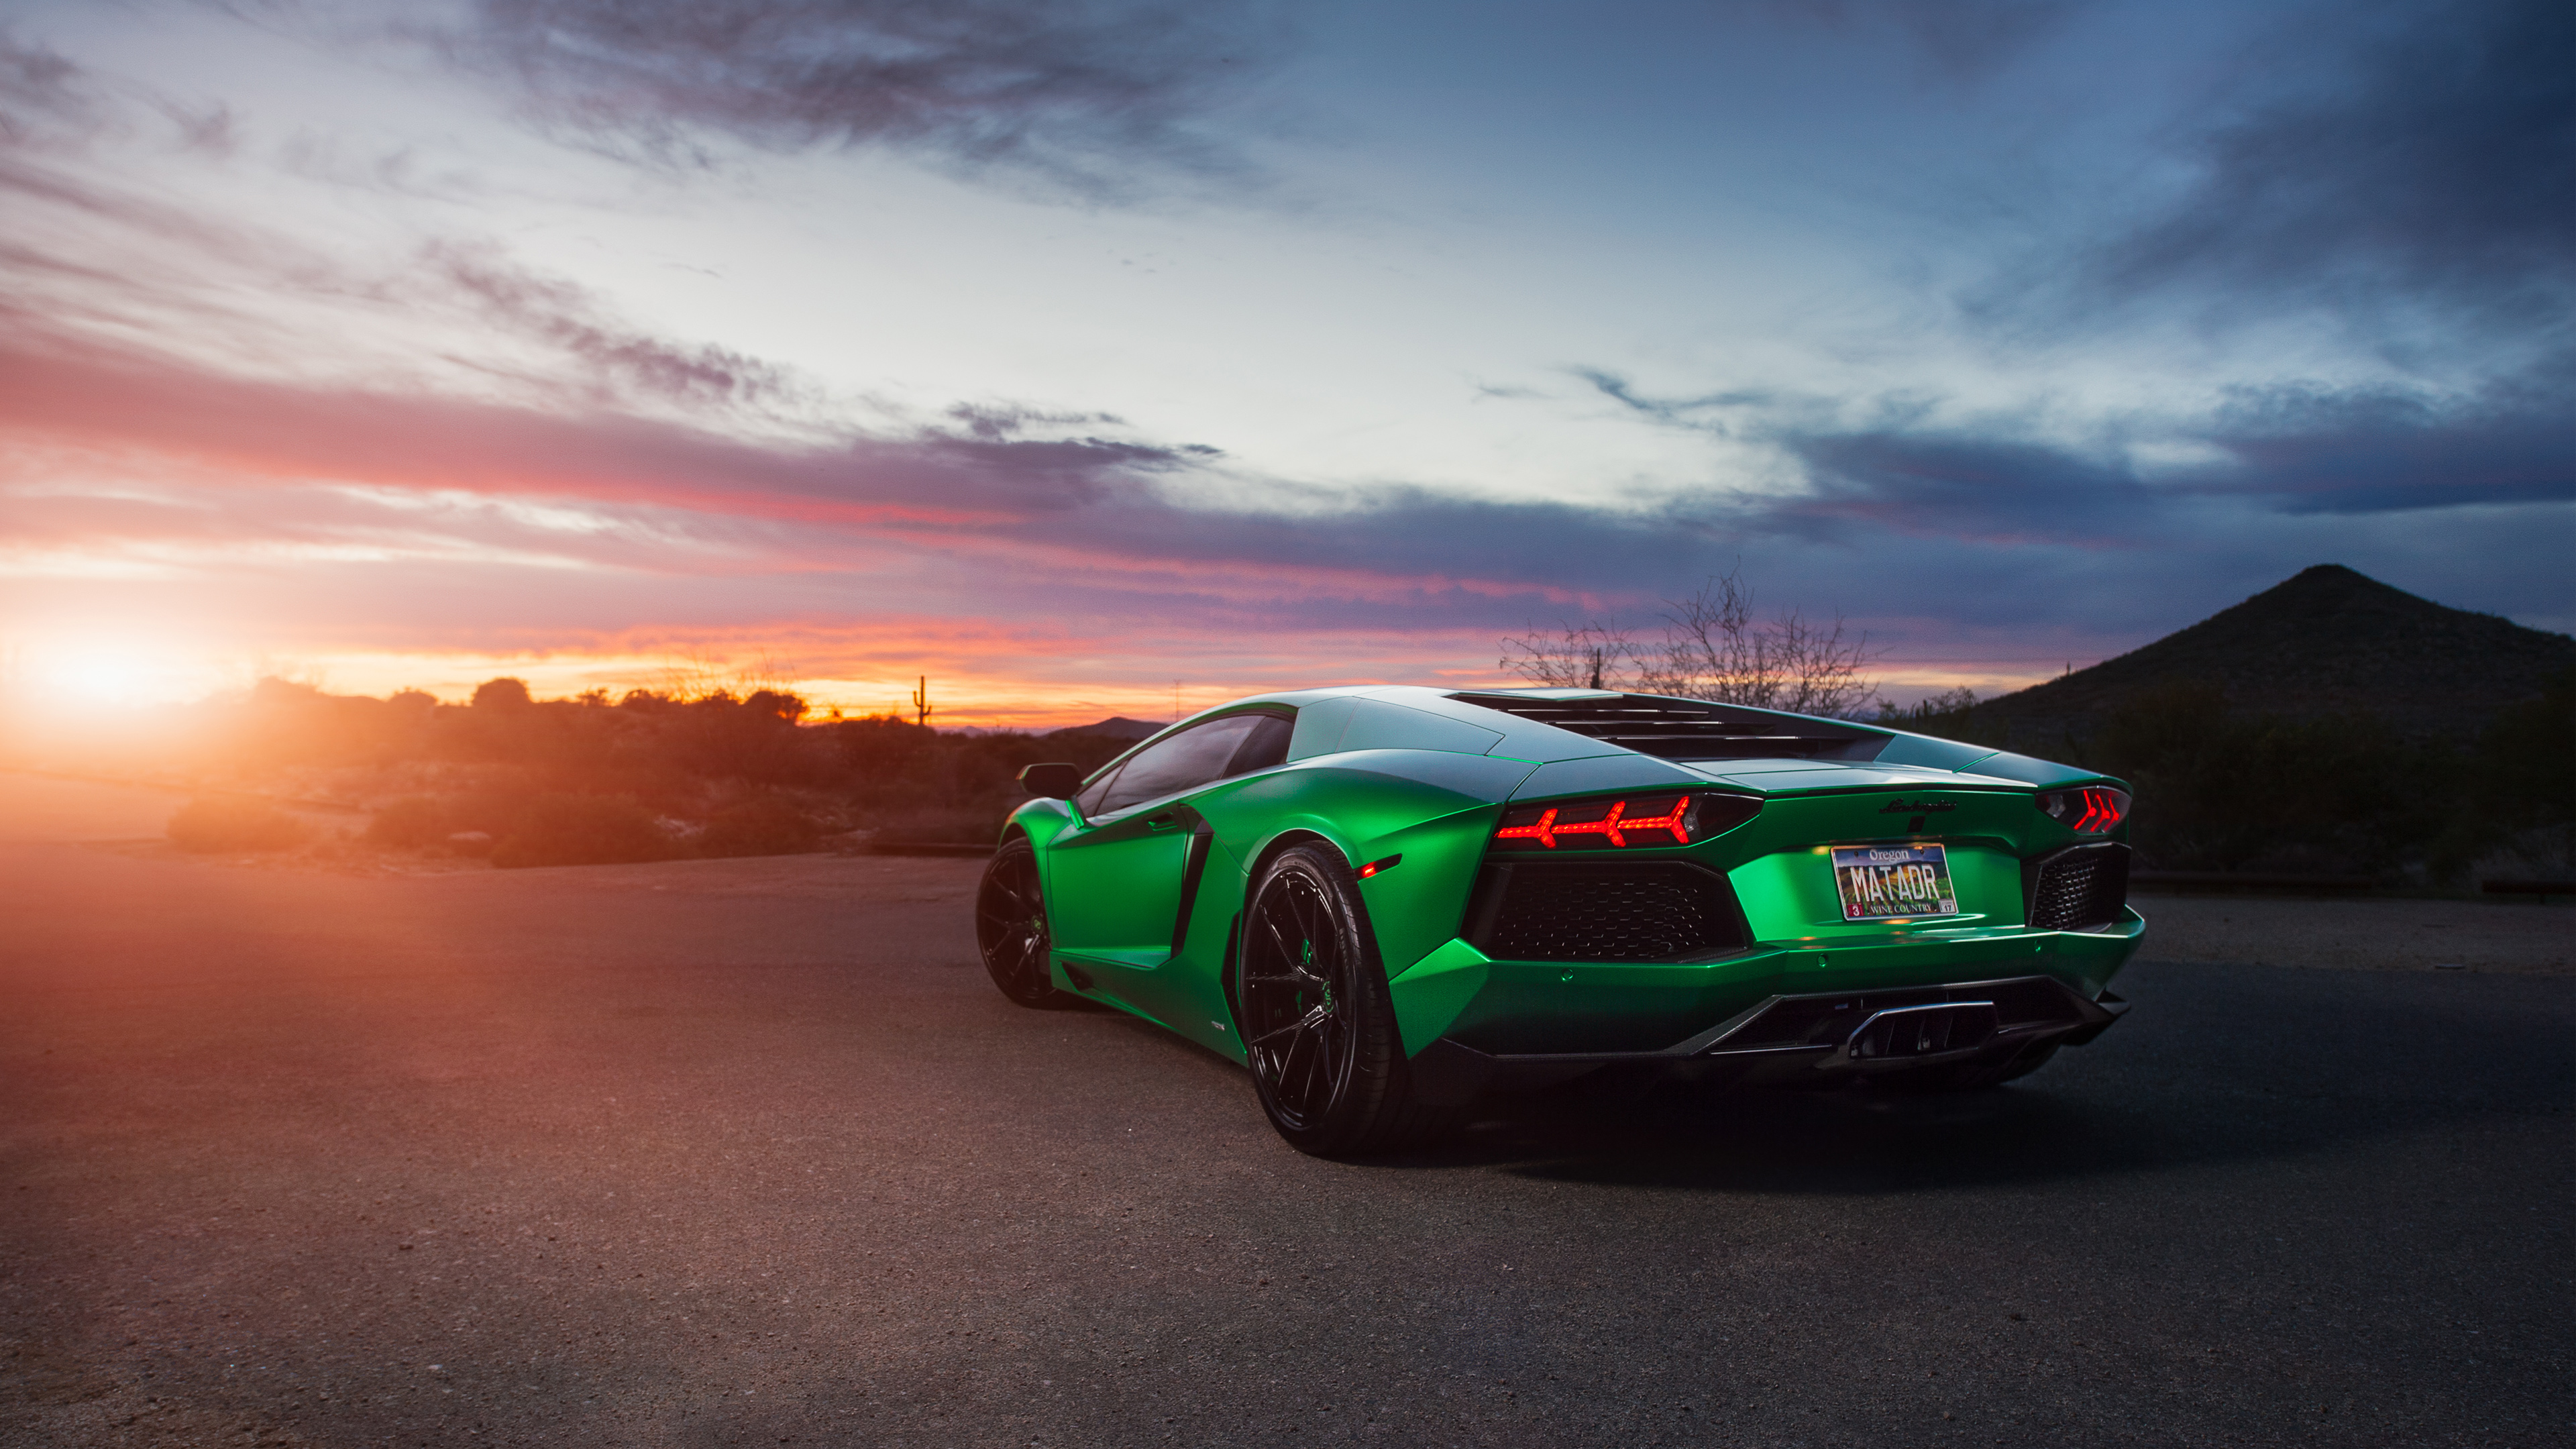 Lamborghini Reventon Iphone Wallpaper Lamborghini Aventador Green 4k Wallpaper Hd Car